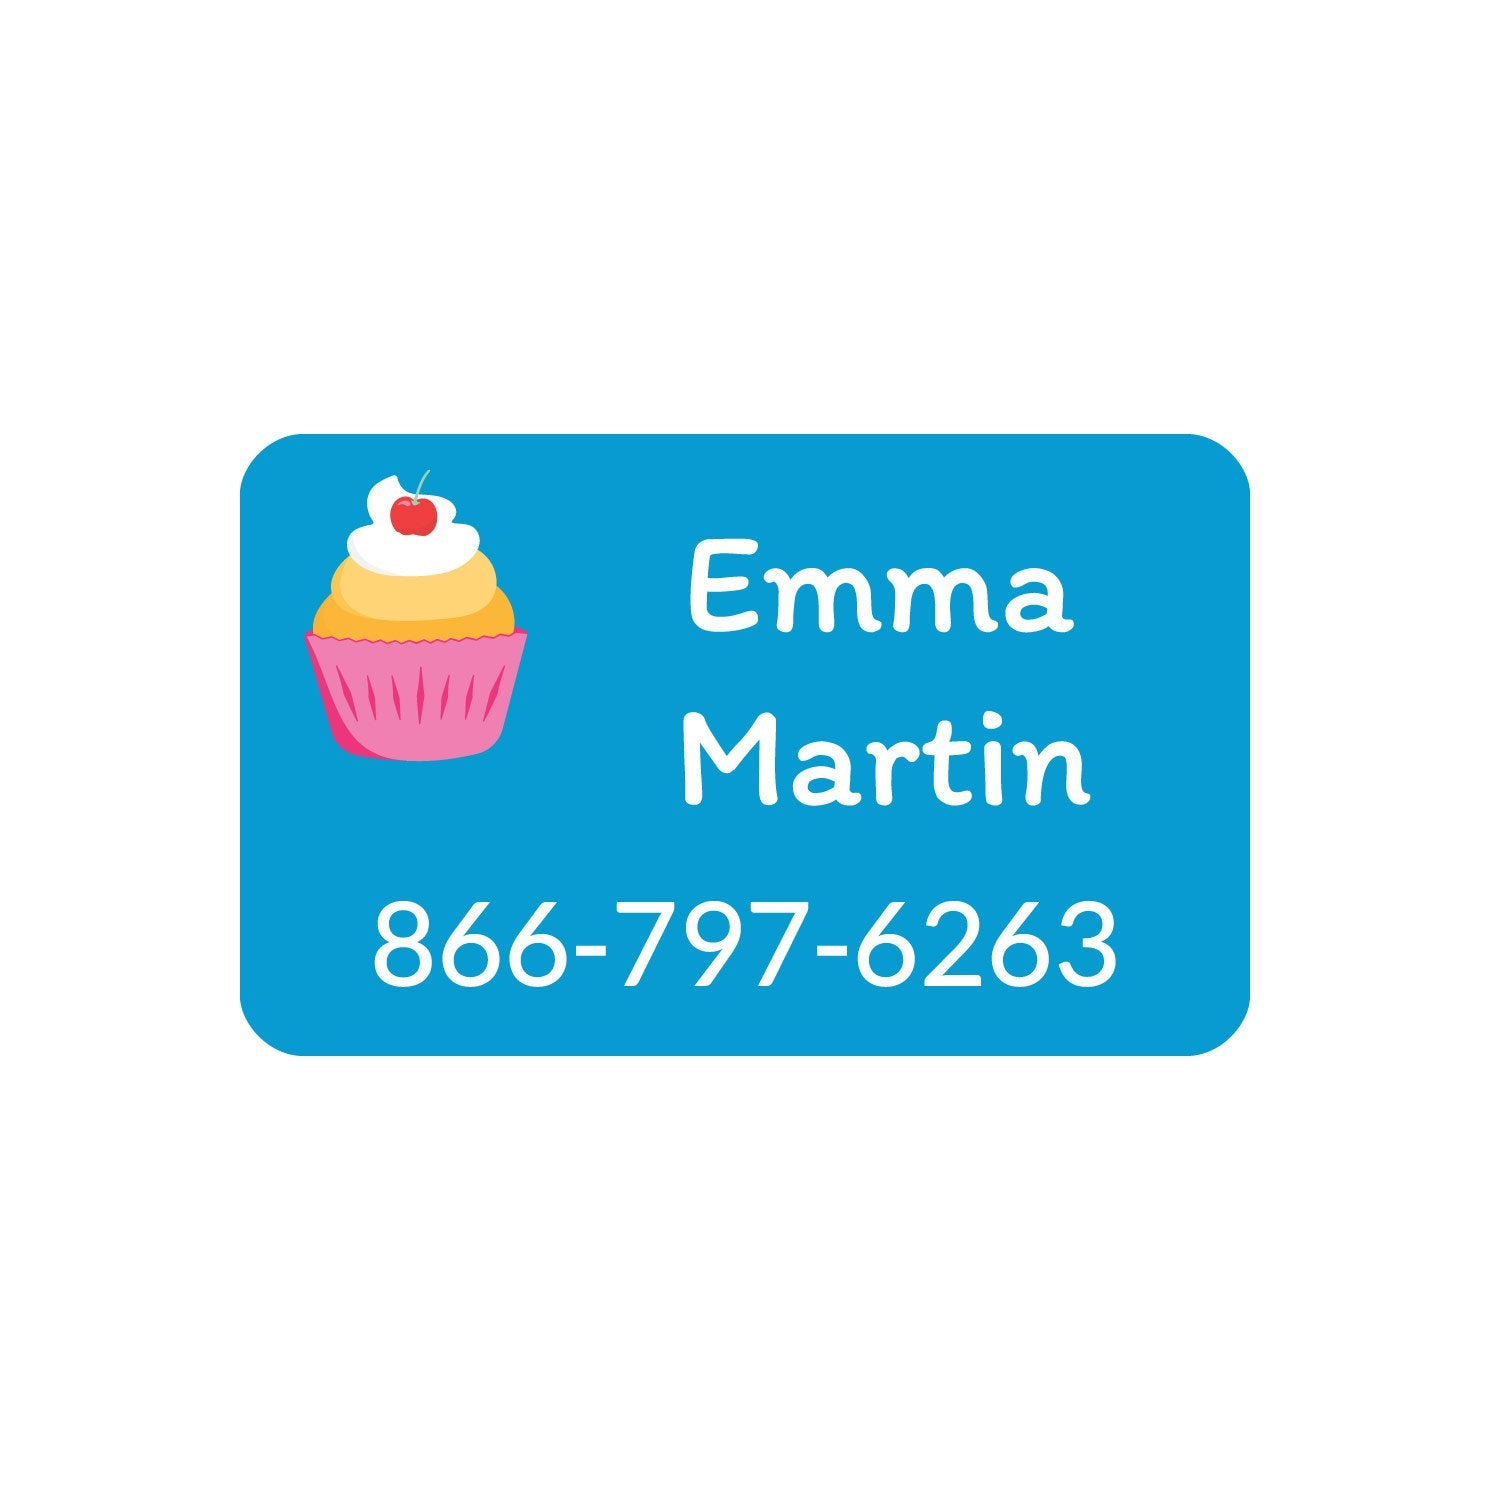 clothing name labels with a cupcake on blue background design